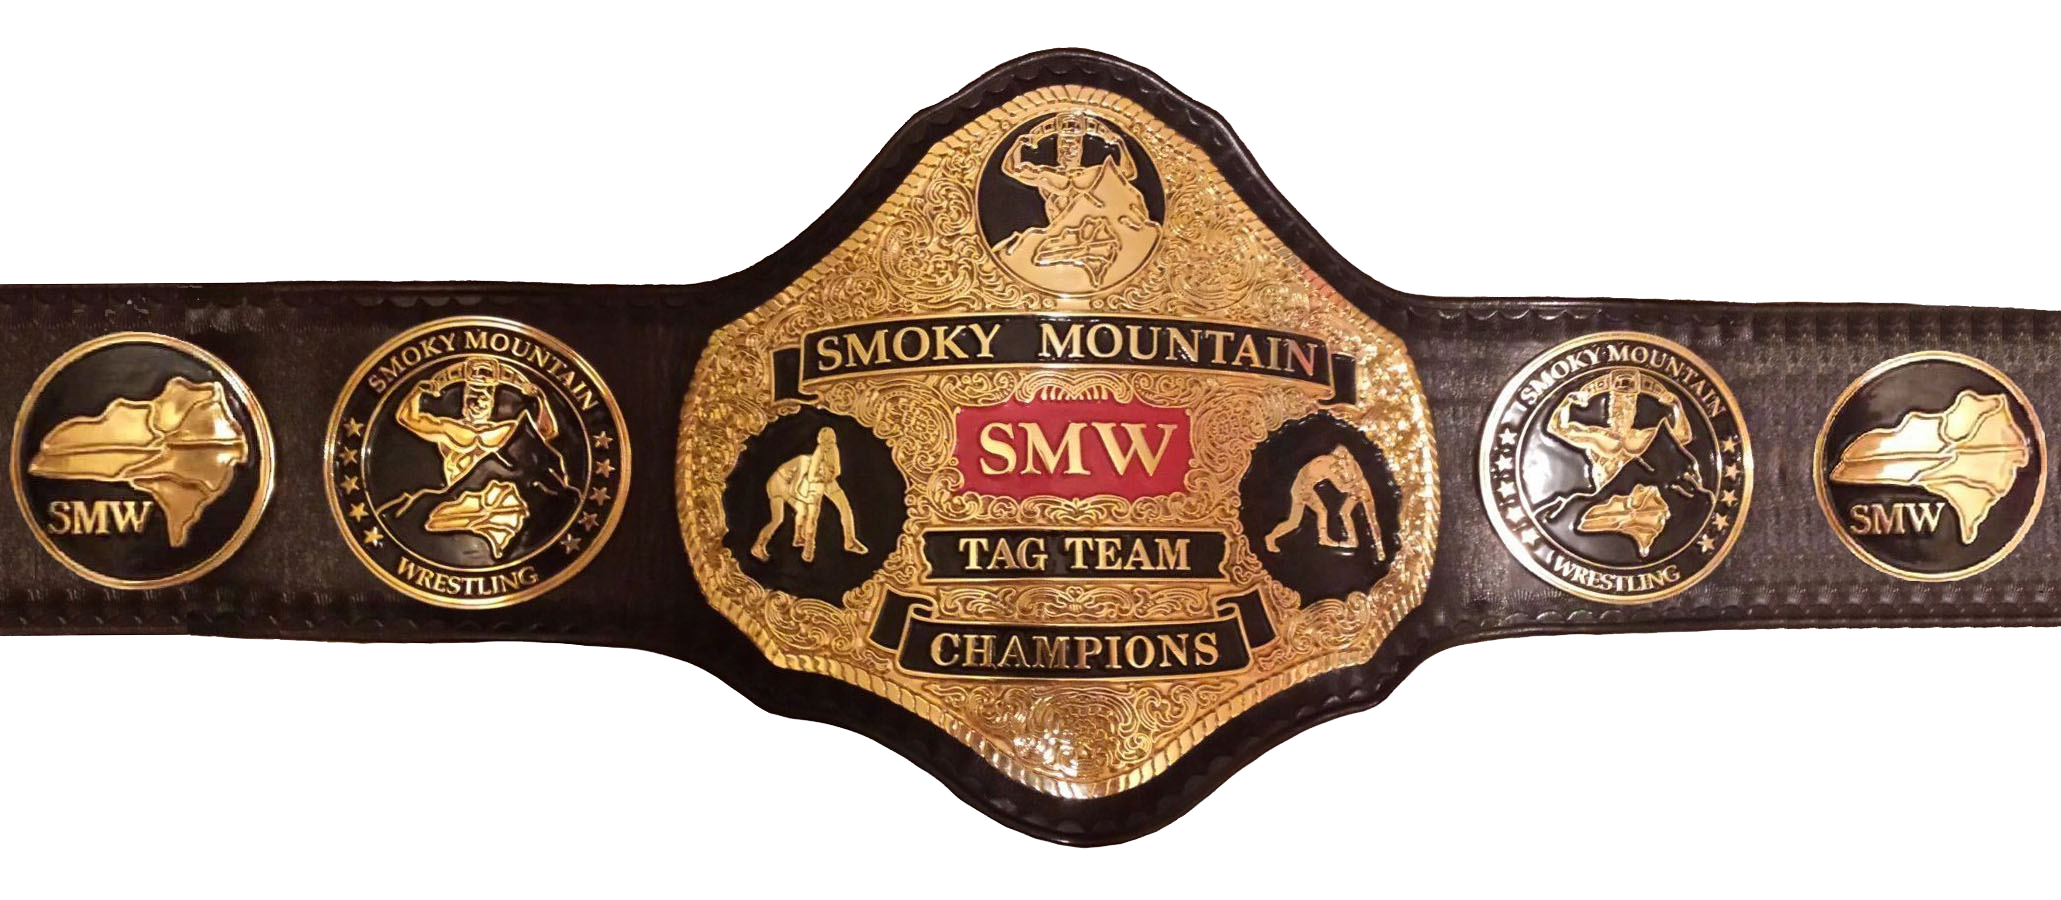 SMW Tag Team Championship/Champion gallery